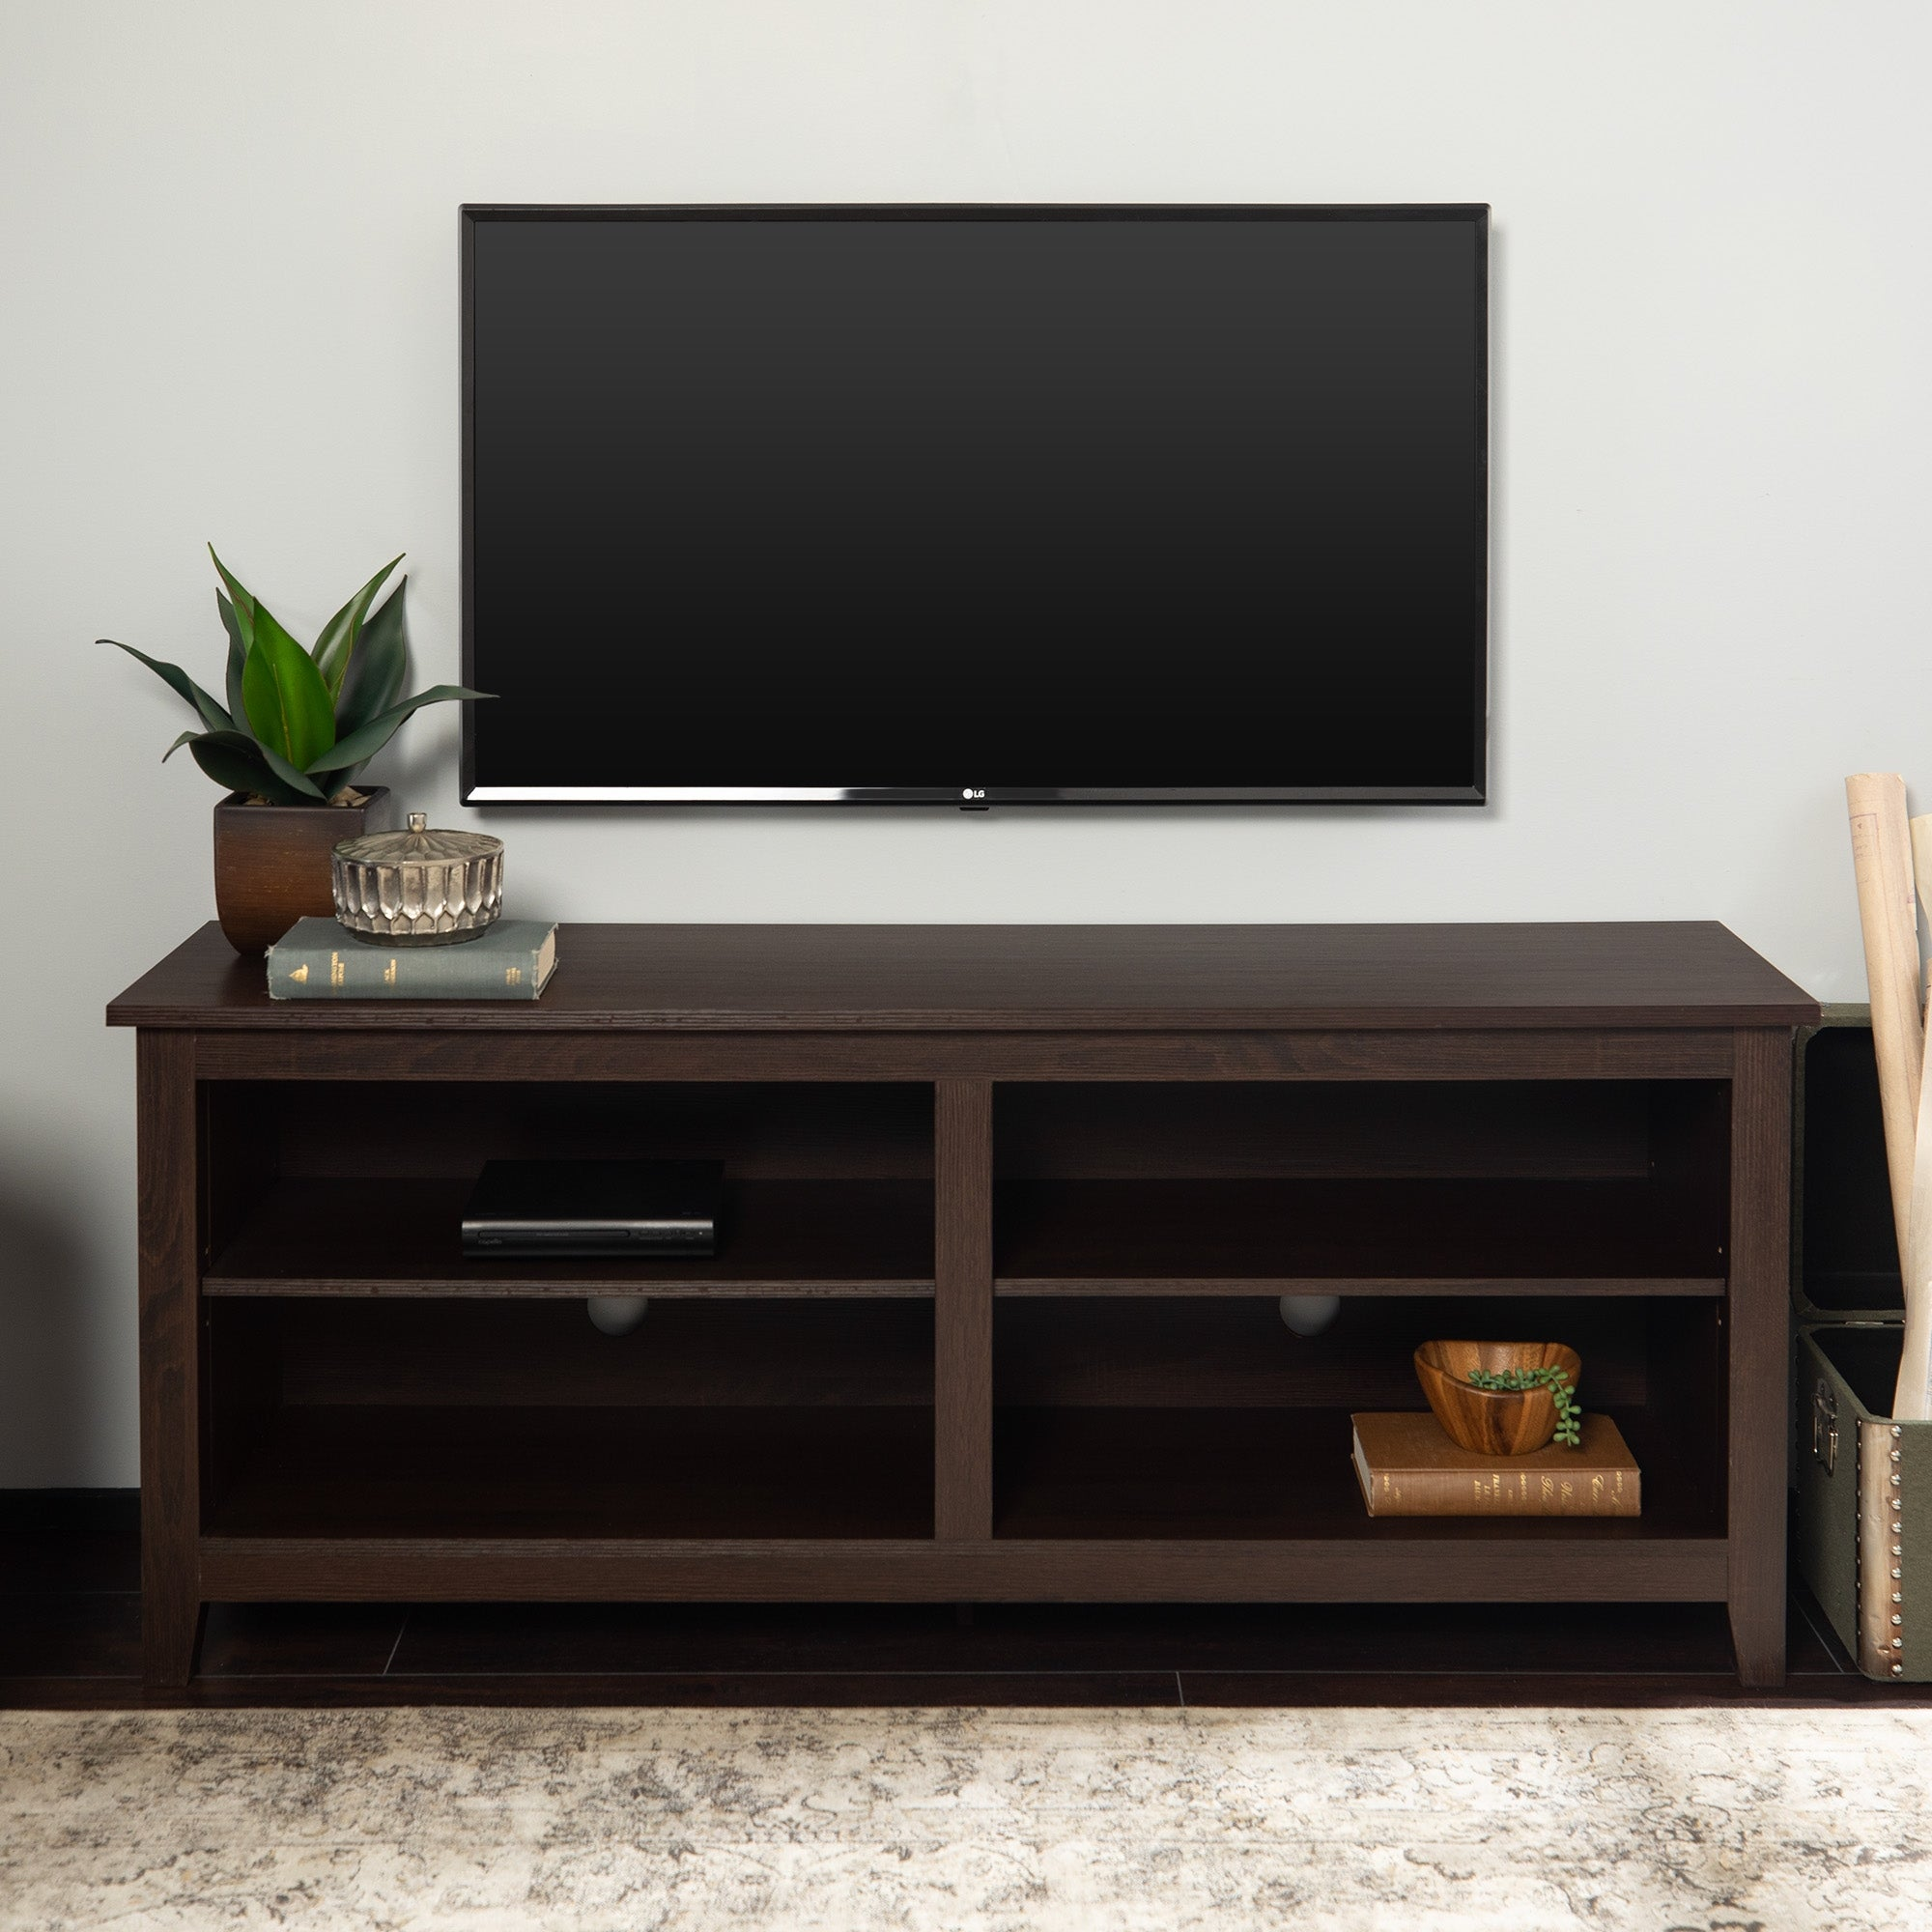 58 Inch Espresso Brown Tv Stand Console With Adjustable Shelving Overstock 7315956